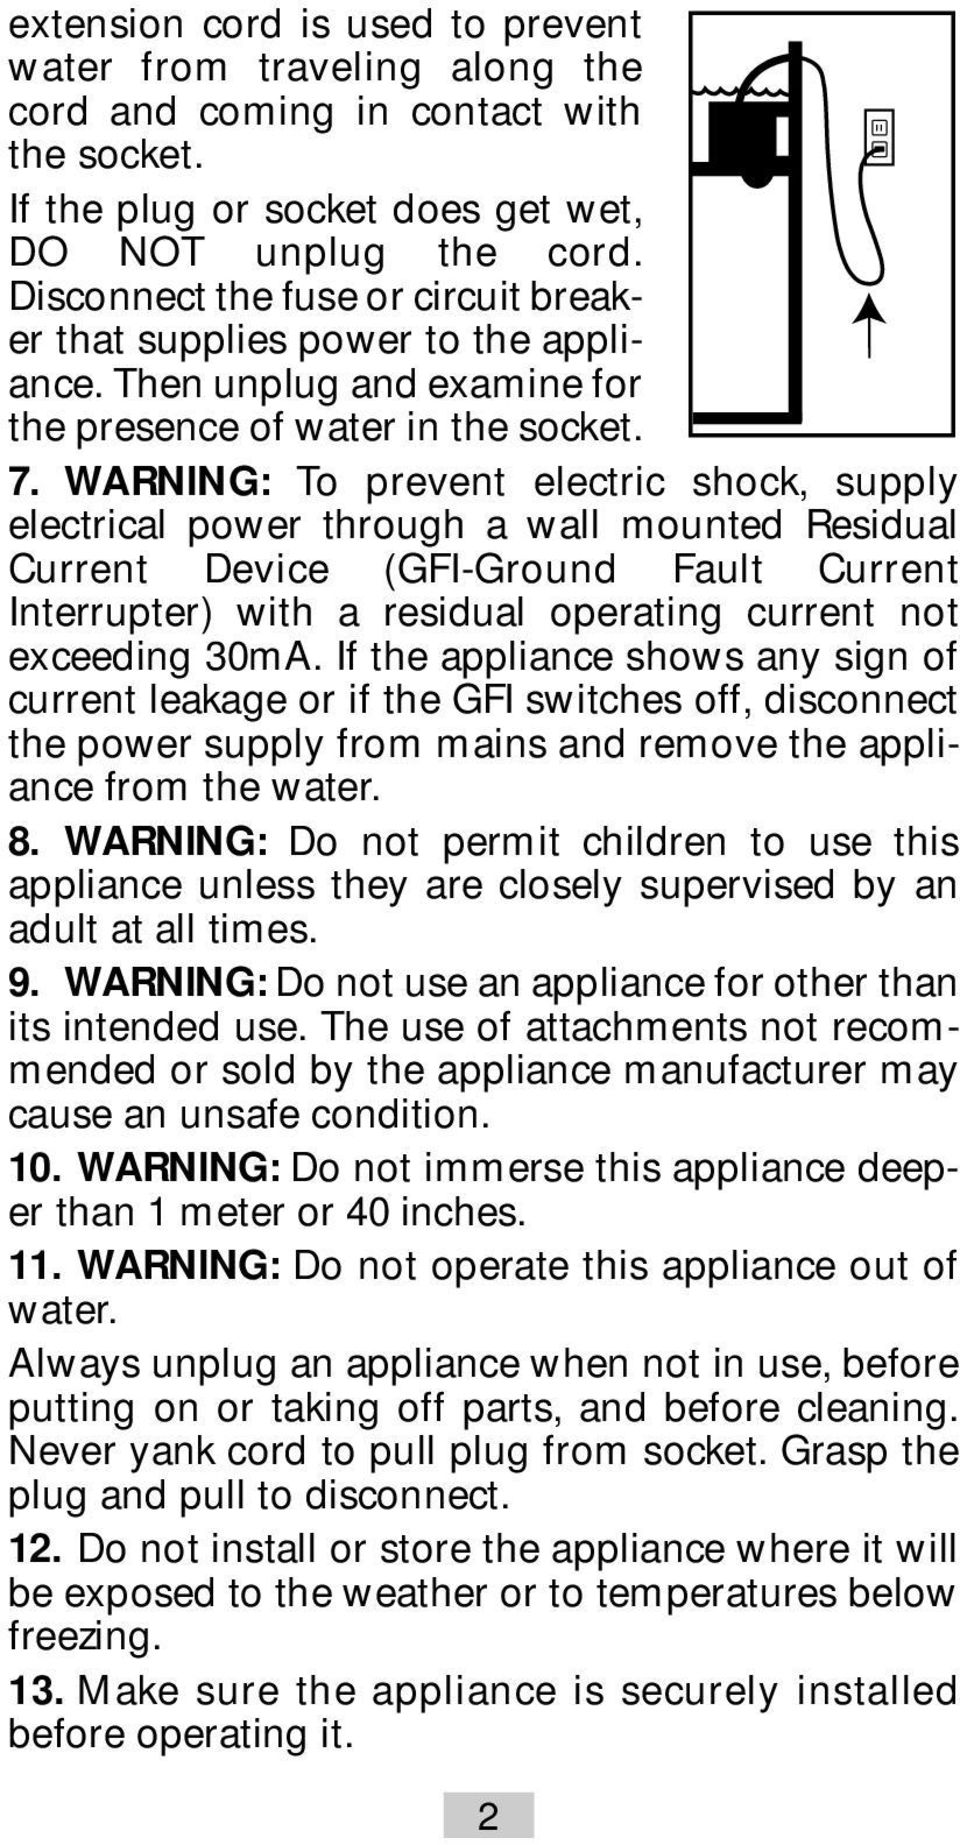 WARNING: To prevent electric shock, supply electrical power through a wall mounted Residual Current Device (GFI-Ground Fault Current Interrupter) with a residual operating current not exceeding 30mA.